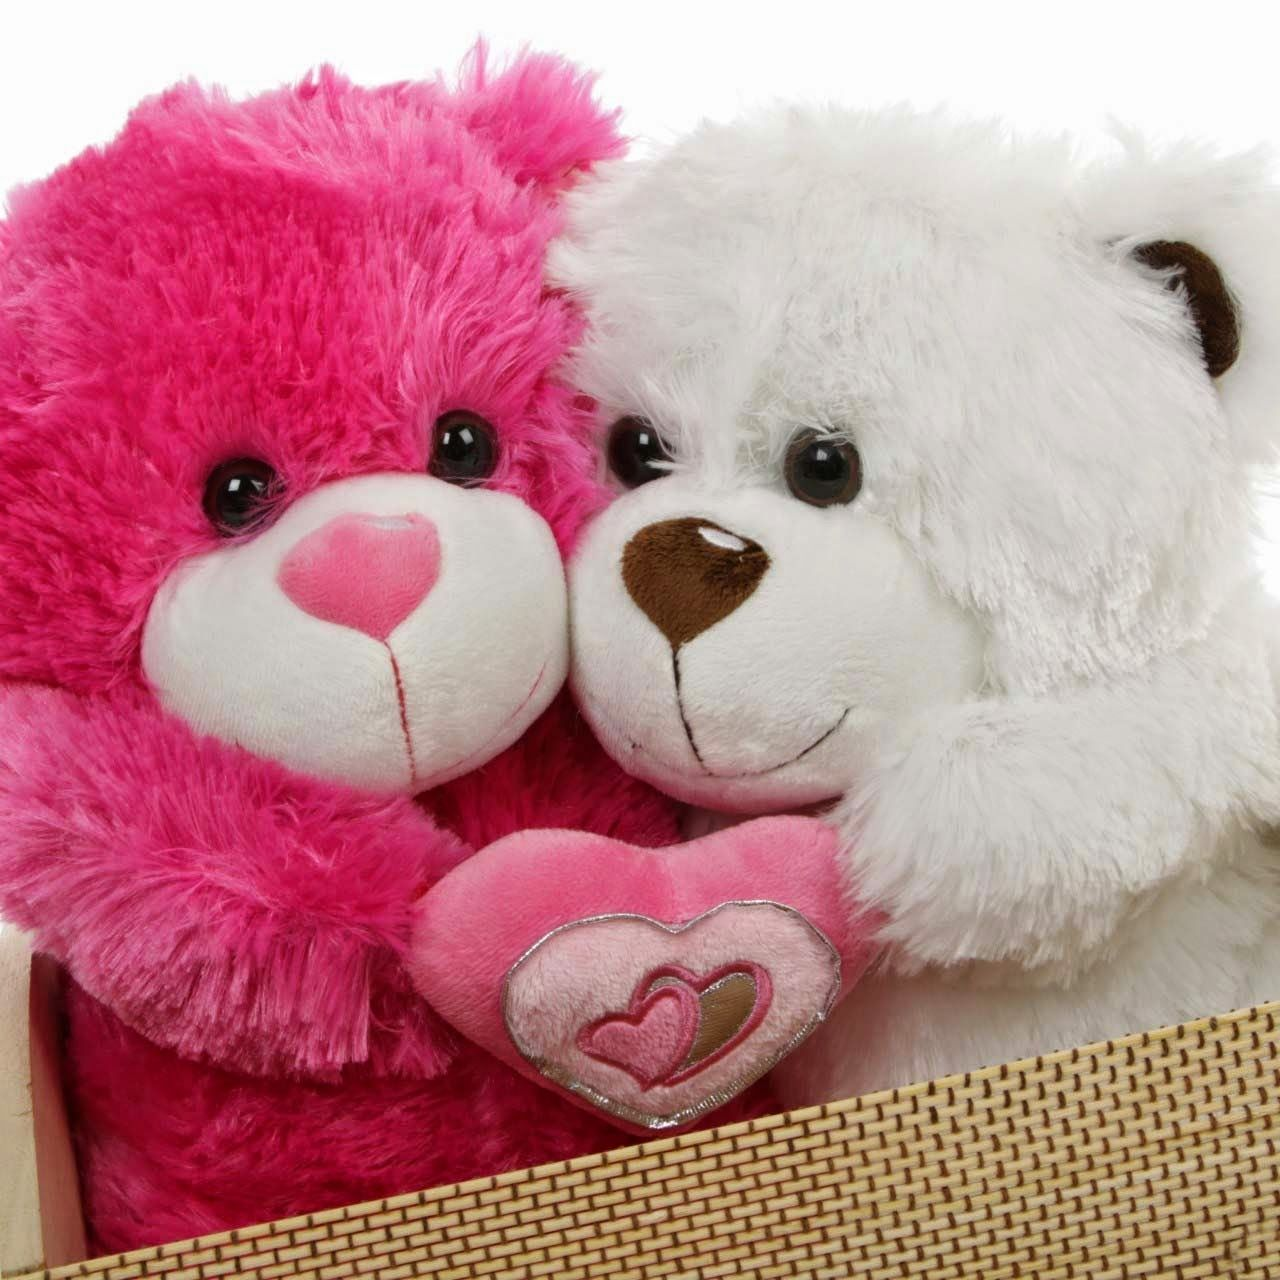 download wallpaper of love teddy bears hd - wallpaper of love teddy